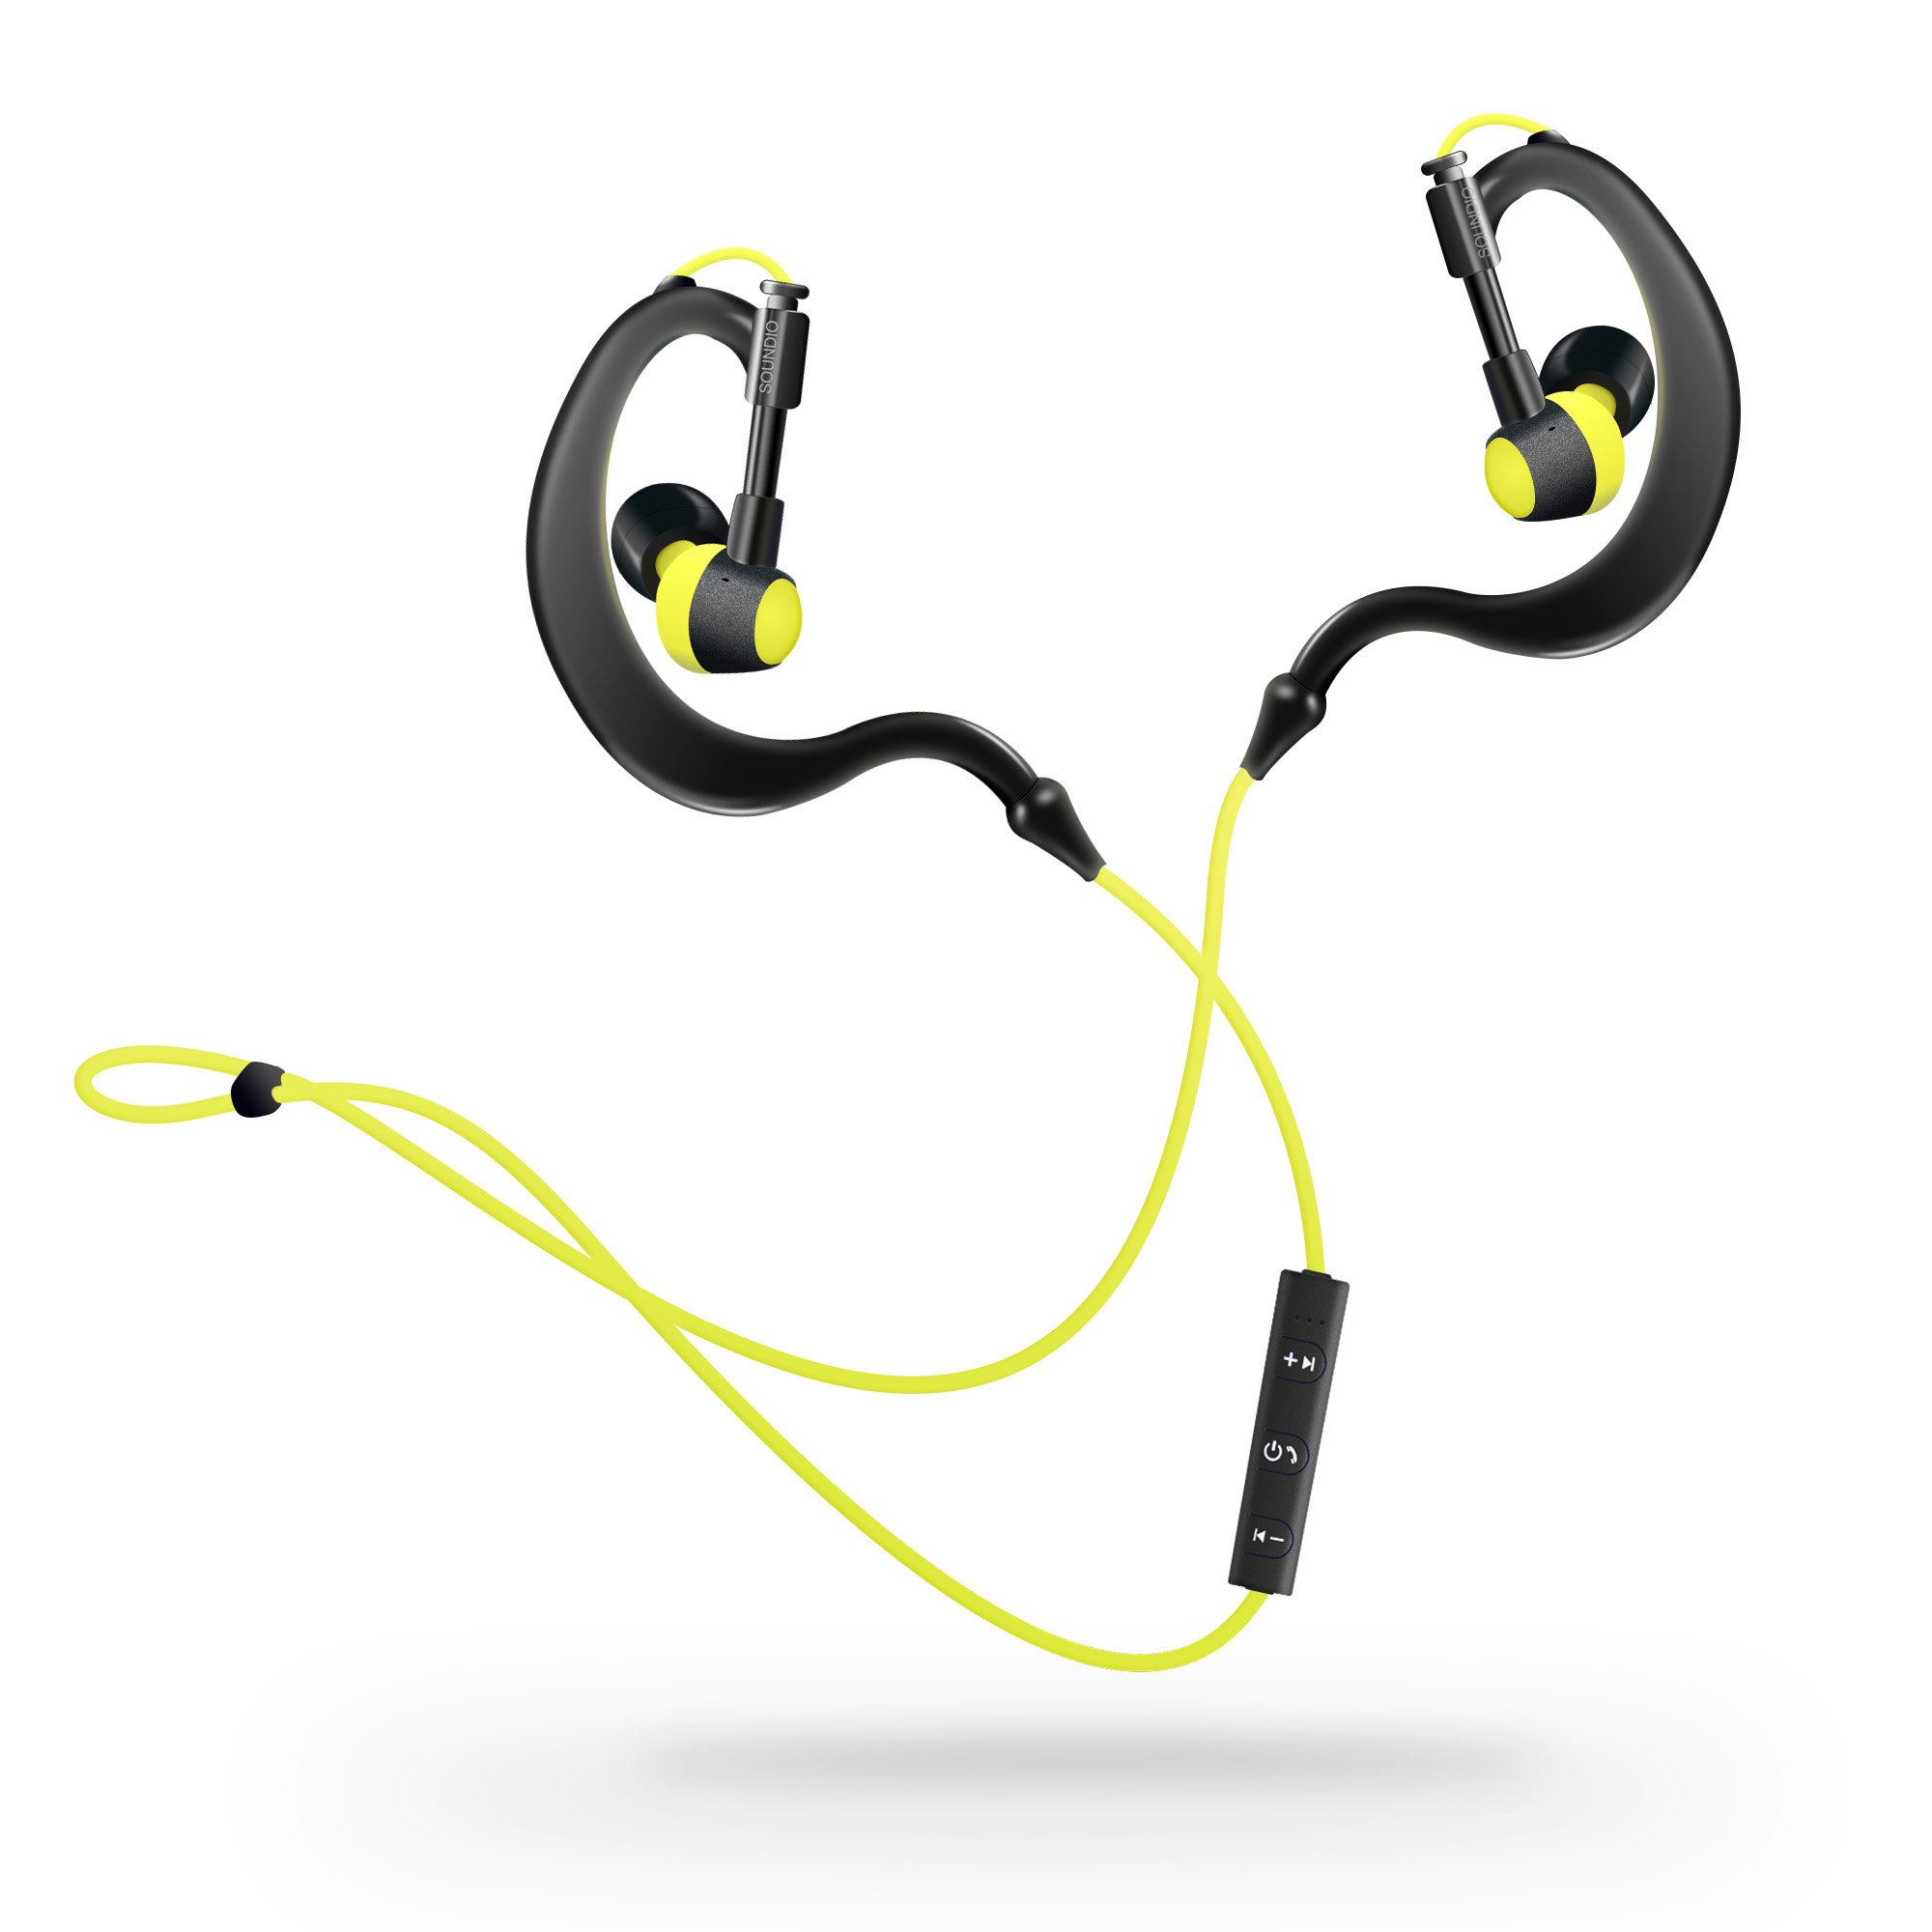 Bluetooth Sports Headphones, Wireless V4.1 Earphones Running Beats Over Behind Earbuds with Built-in Mic for Calling 5 Hour Music Play Time for iPhone Android Smartphones